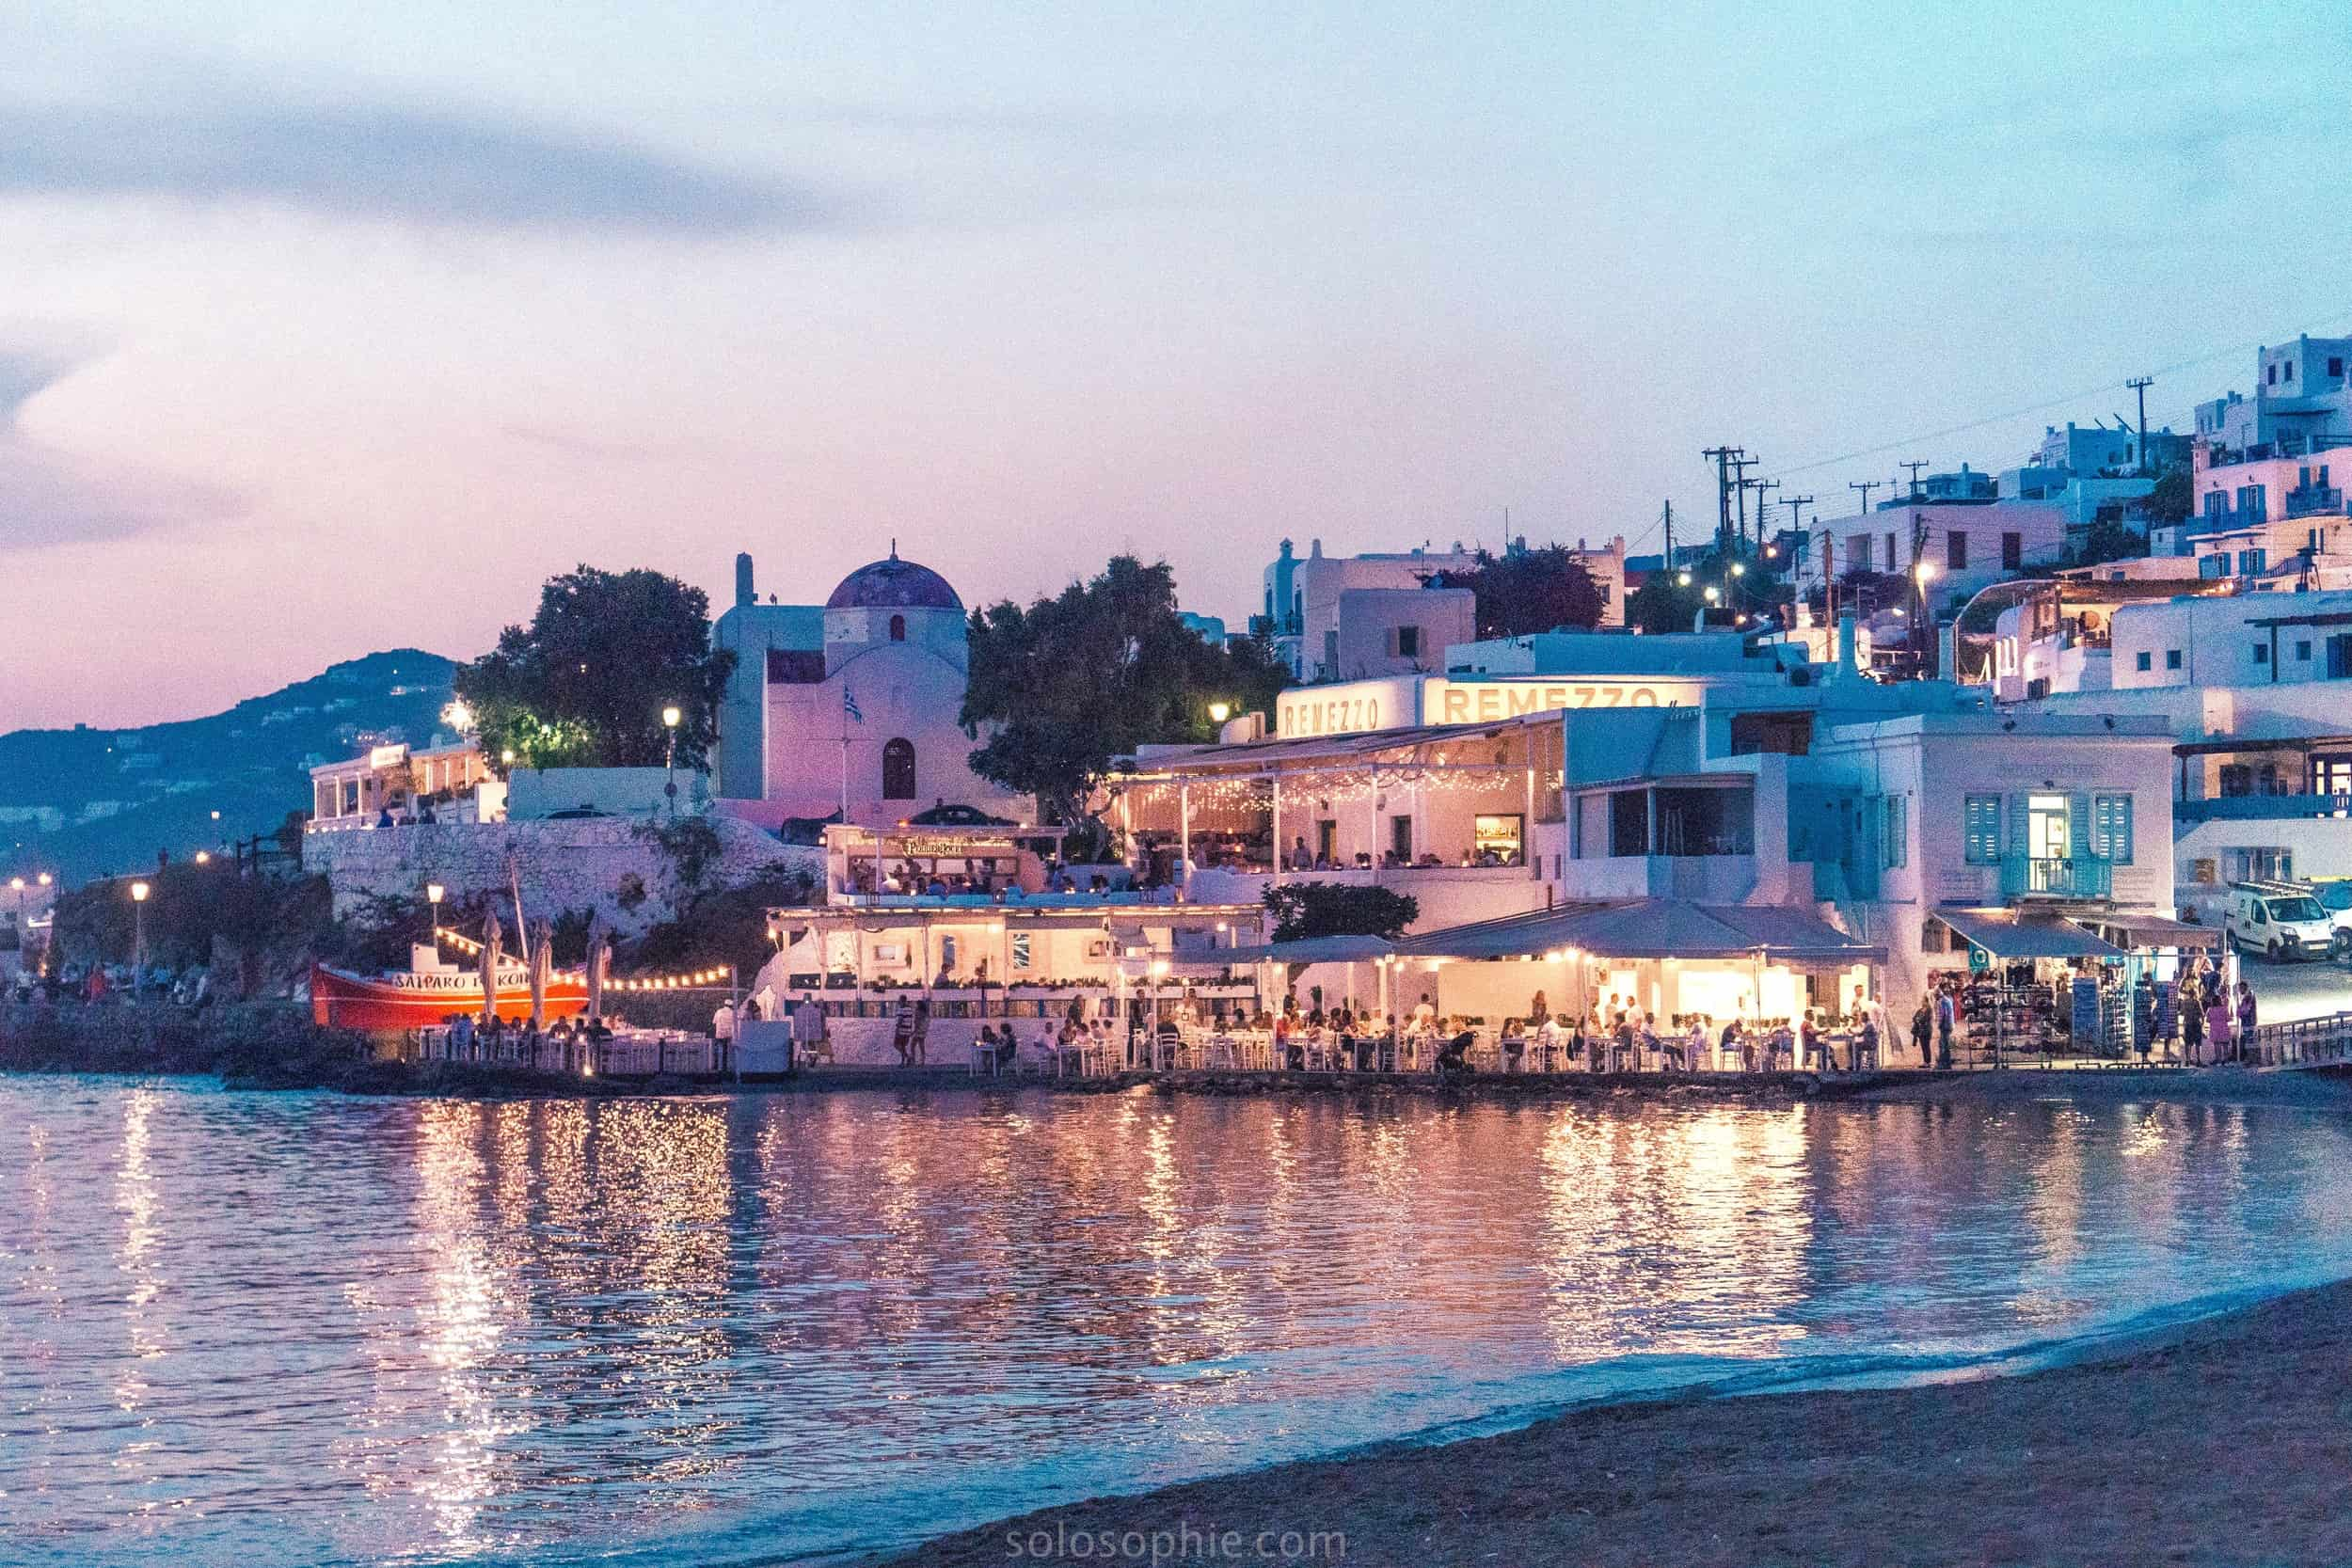 Cruising the Aegean with Celestyal Cruises: A Complete Review of seven days in Greece